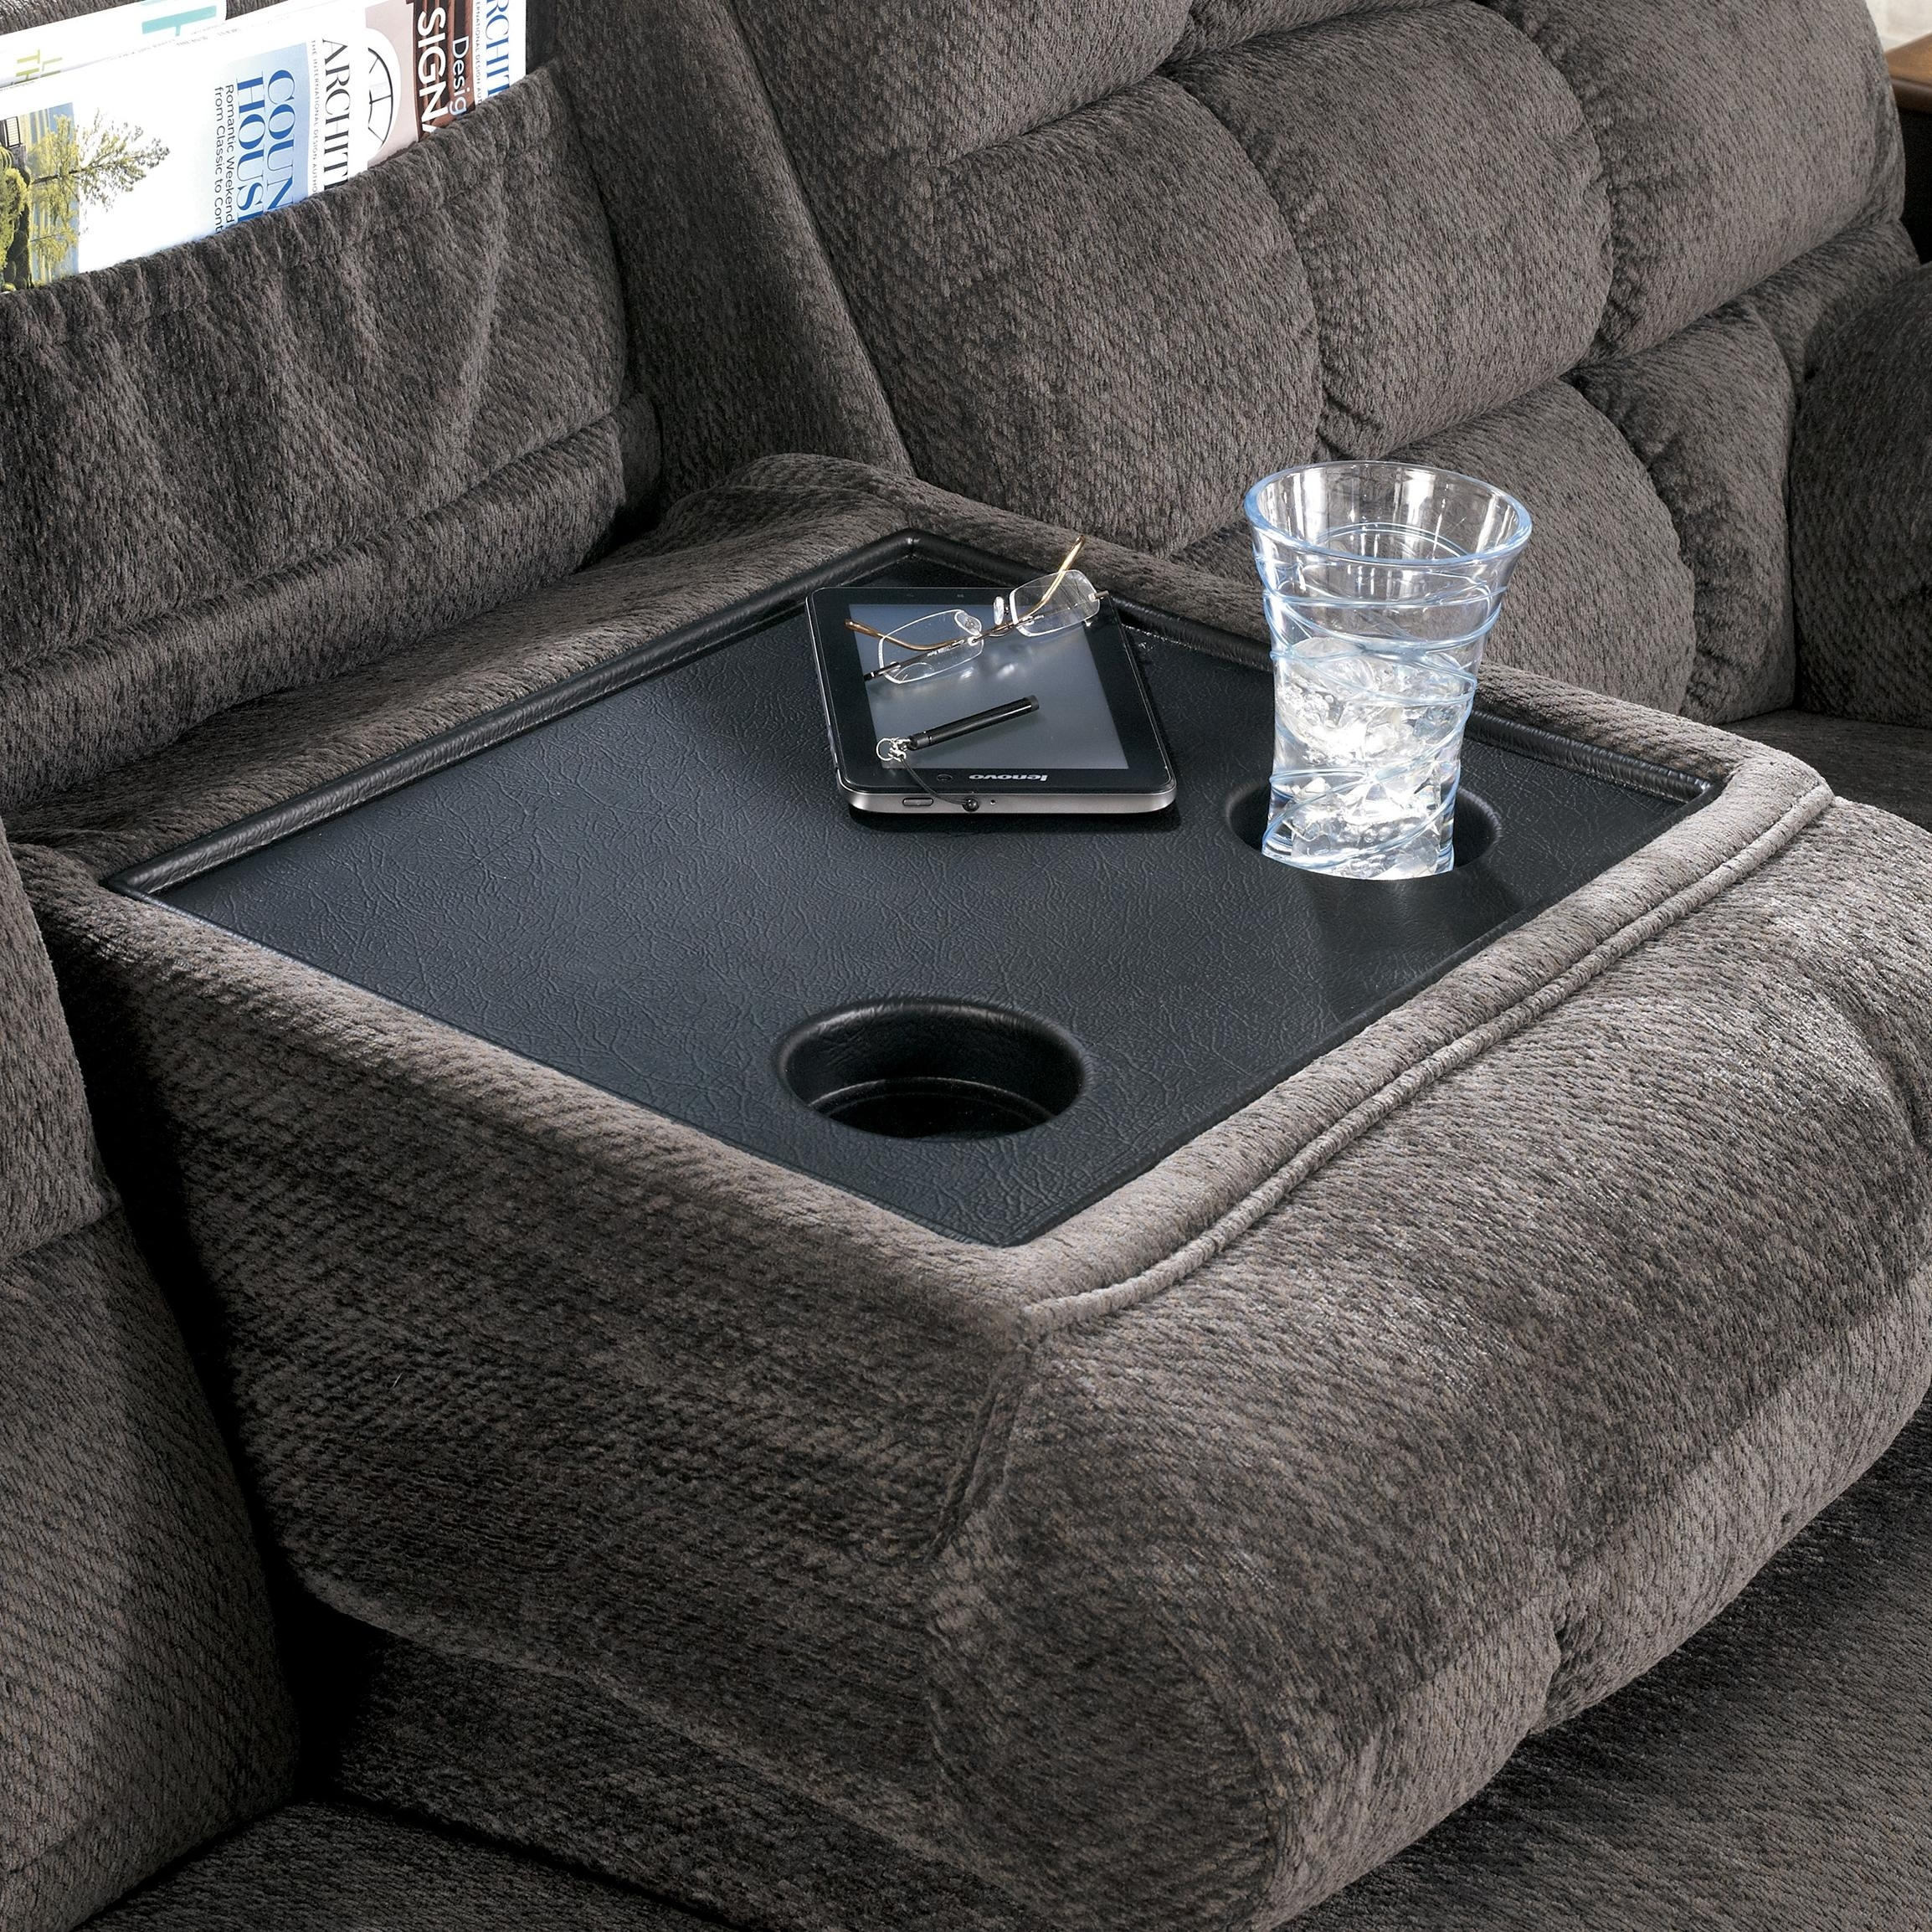 Reclining Sofa With Drop Down Table And Cup Holderssignature Regarding Sofas With Drink Tables (View 9 of 10)